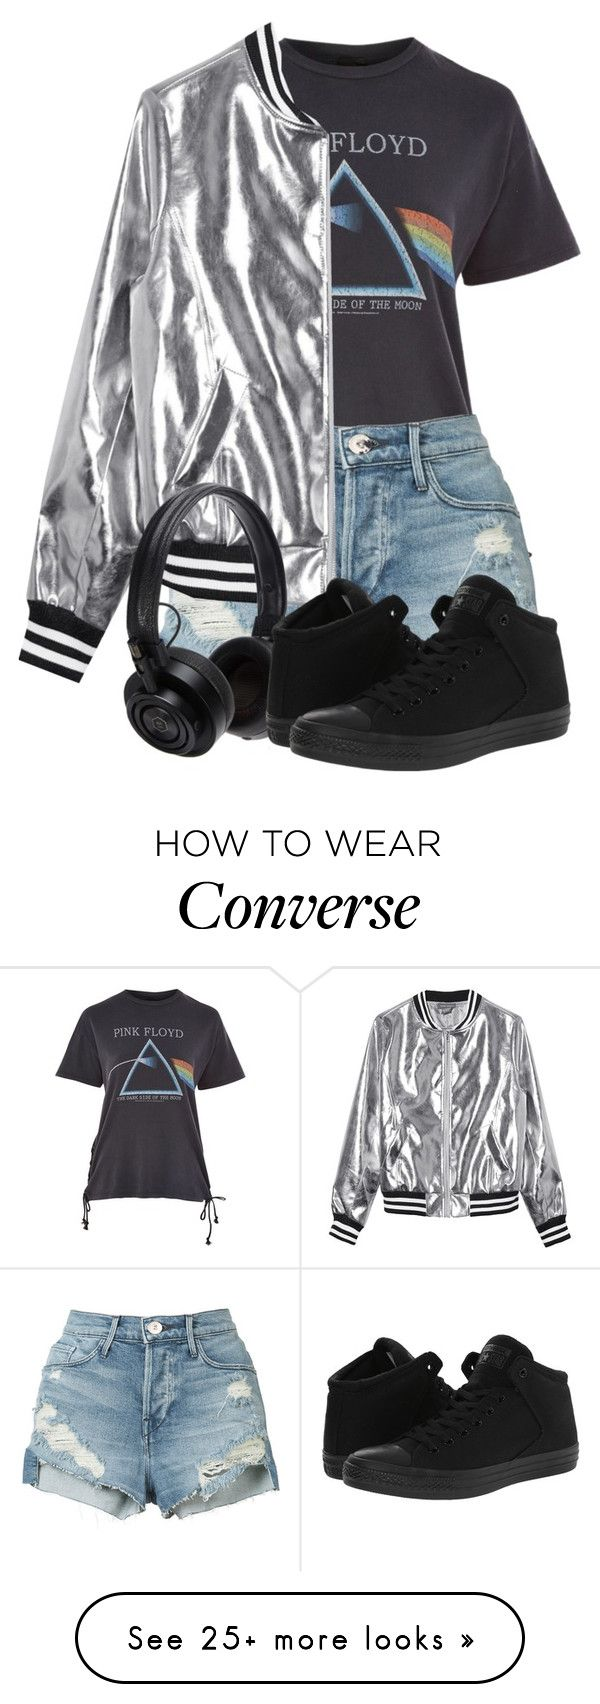 """Quicksilver Style"" by mfkapocias on Polyvore featuring Topshop, 3x1, Sans Souci, Master & Dynamic, Converse, Silver, shorts, converse and bomber"